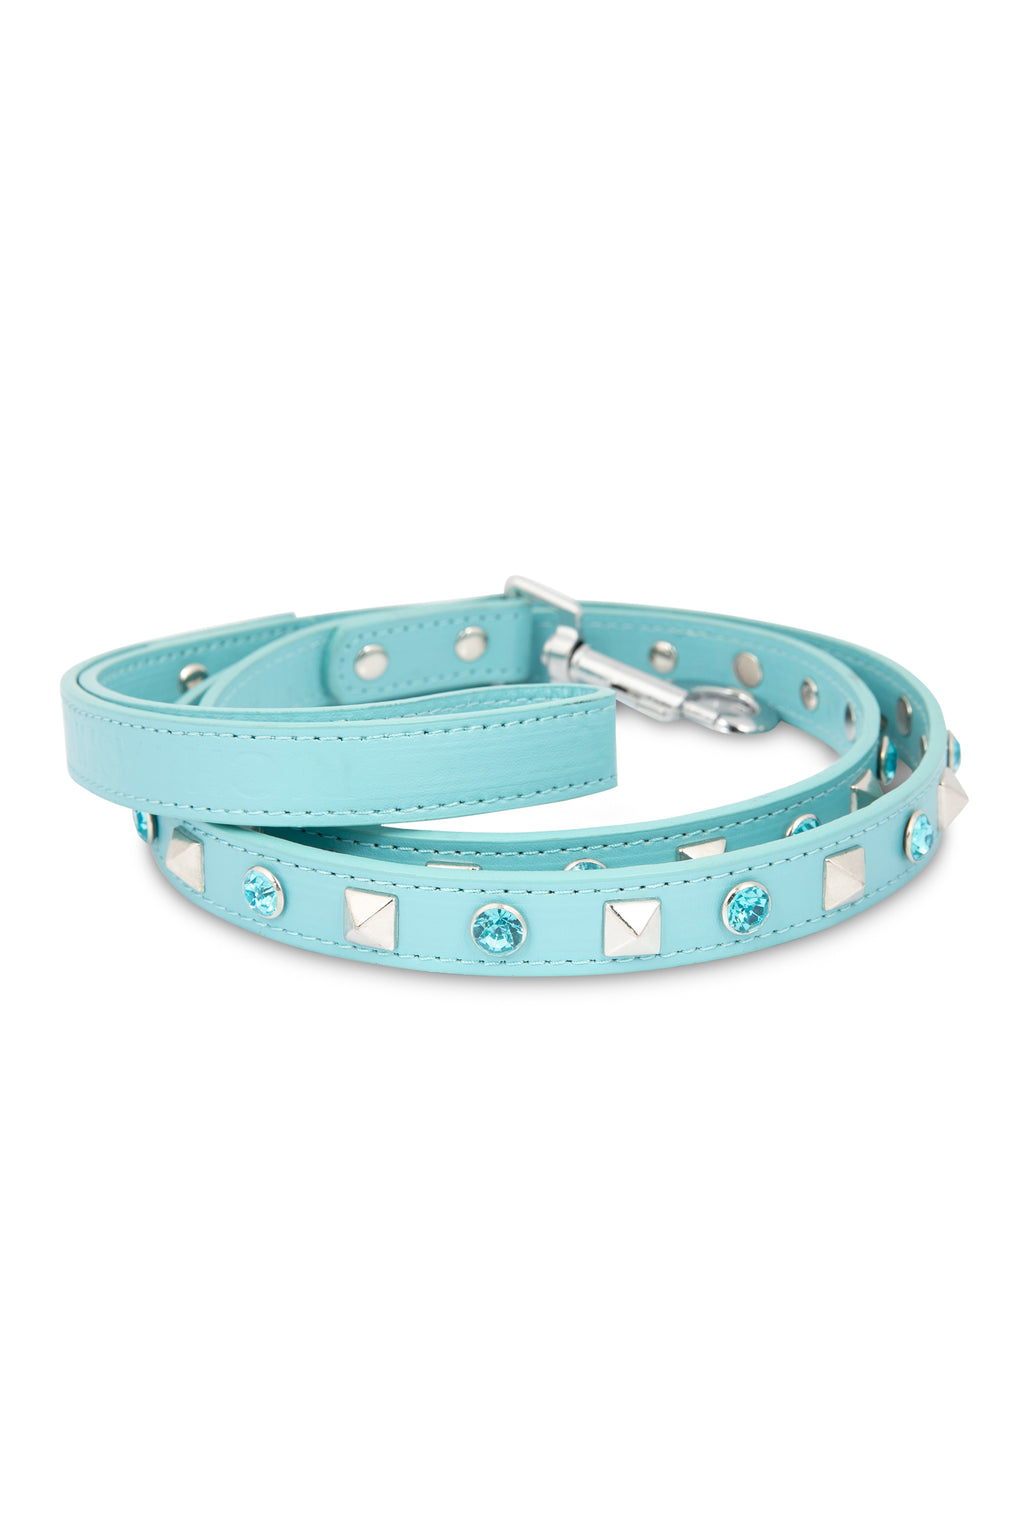 Rhinestone Blue Leash